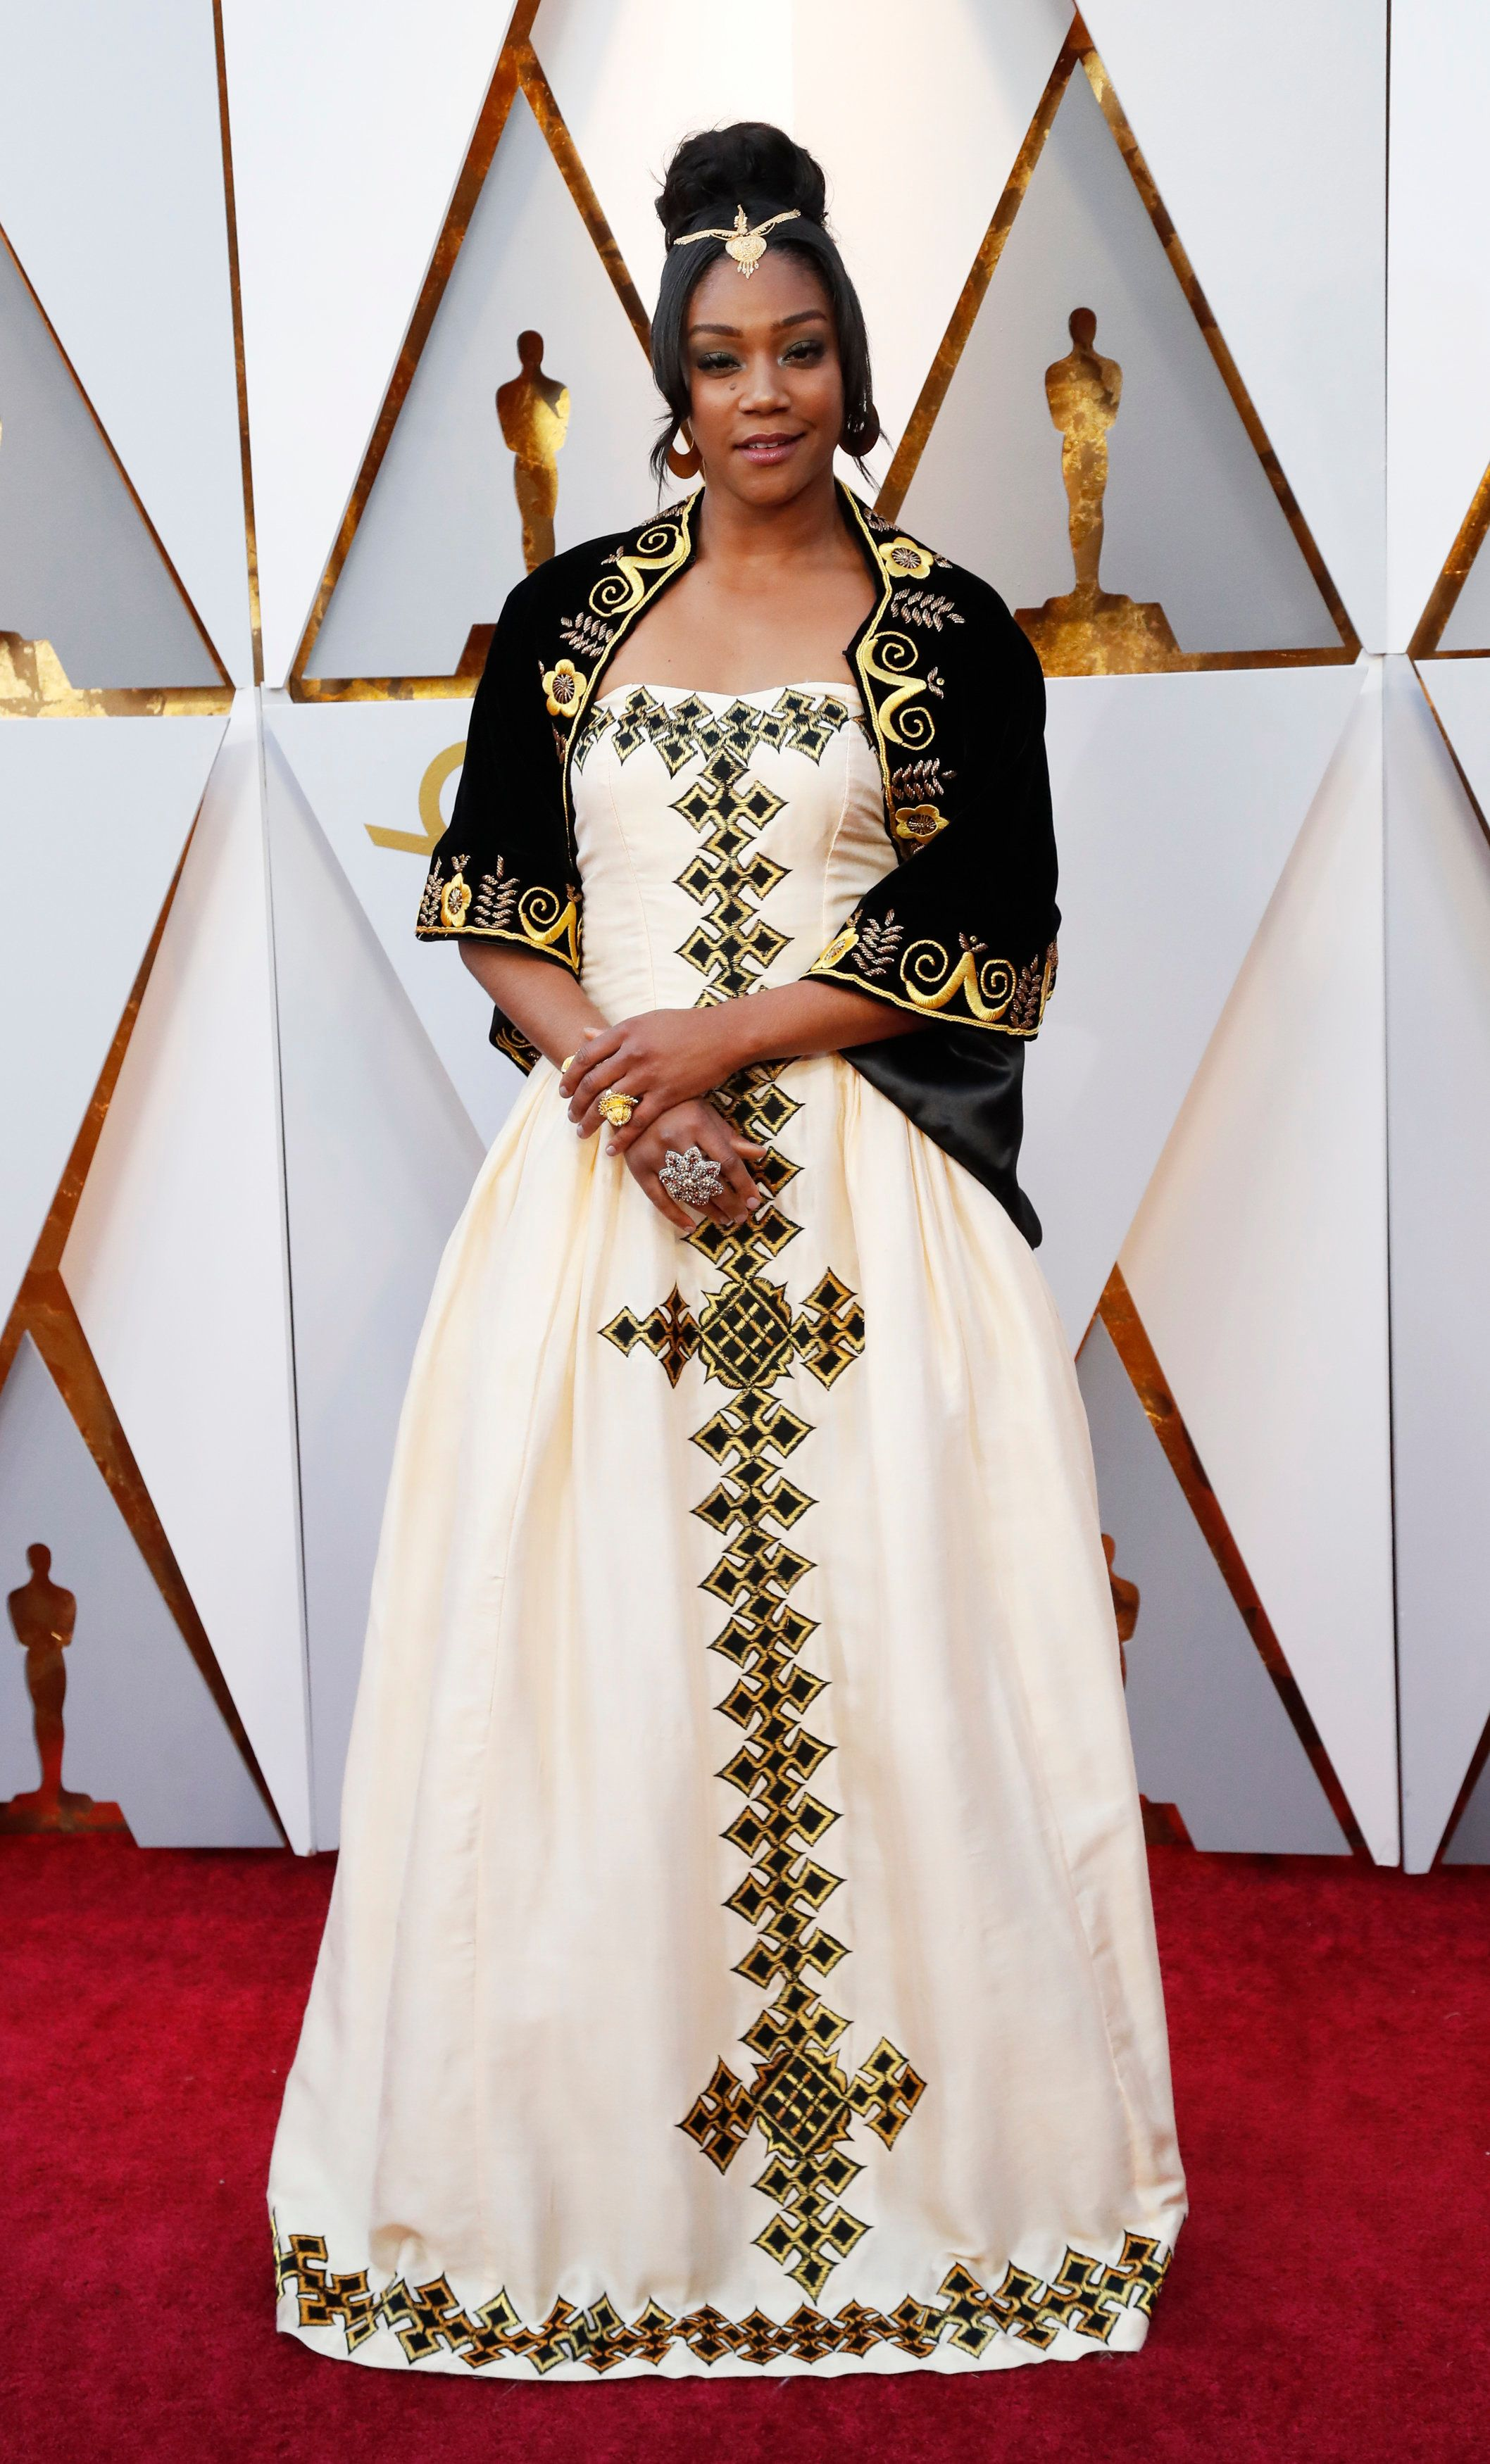 90th Academy Awards - Oscars Arrivals – Hollywood, California, U.S., 04/03/2018 – Tiffany Haddish wears a dress from designer from Eritrea in honor of her father. REUTERS/Mario Anzuoni